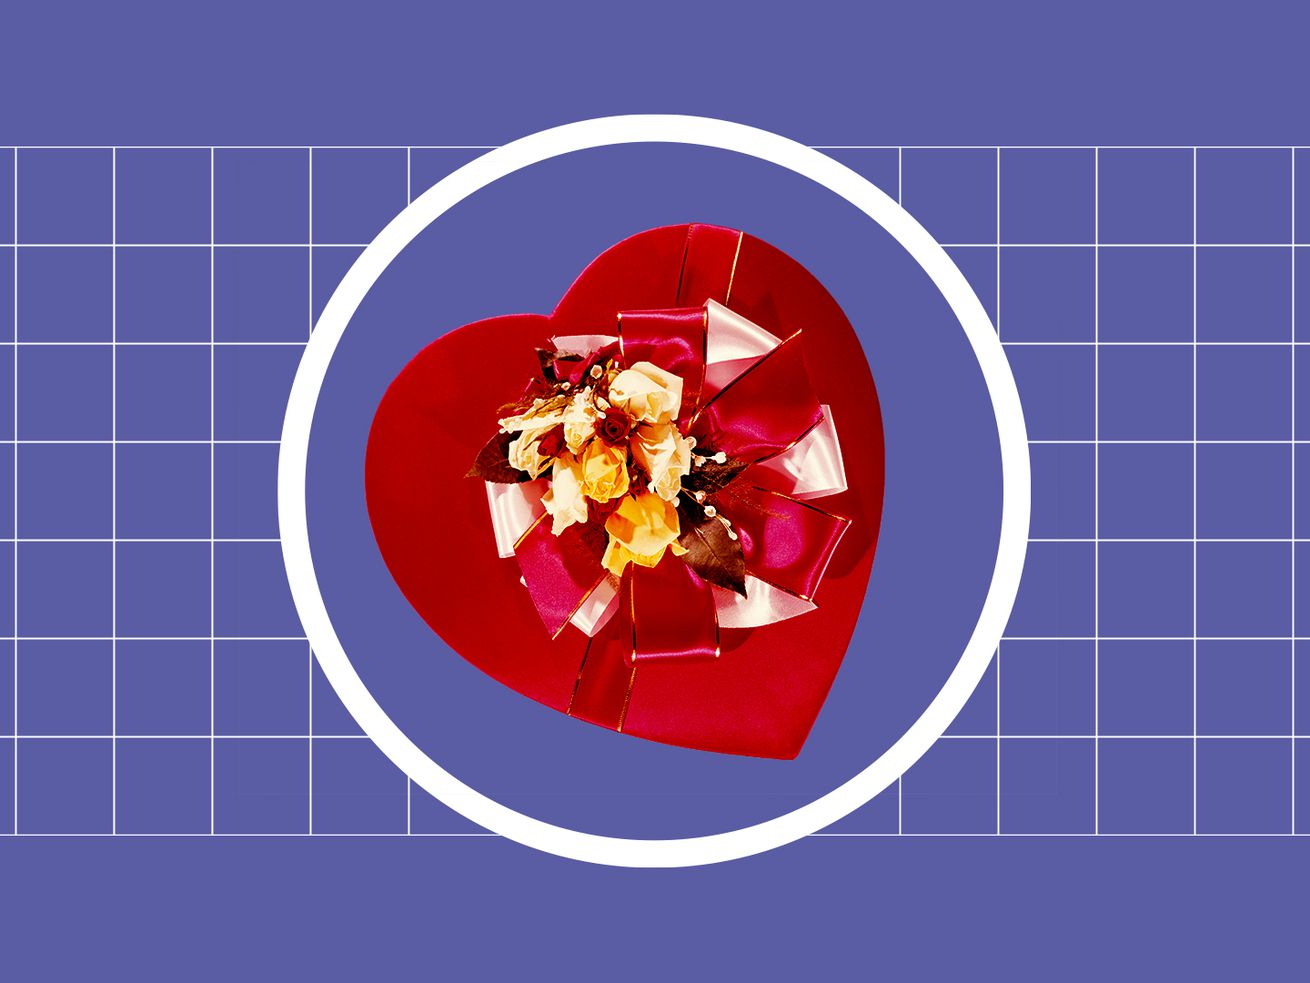 How a Heart-Shaped Candy Box Came to Stand for Love